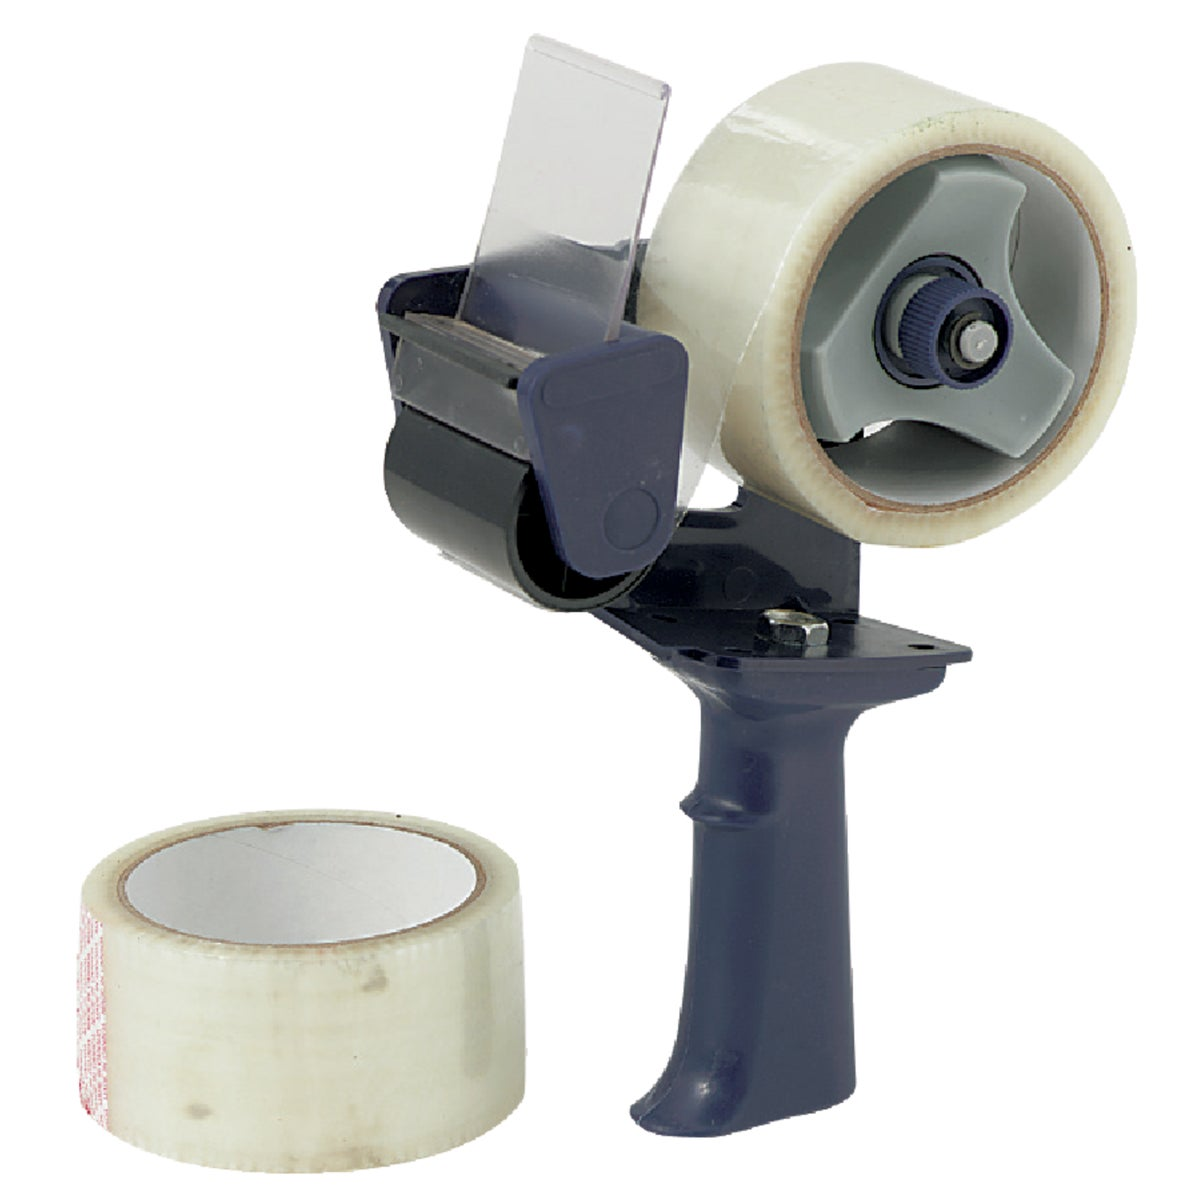 W/2 ROLLS TAPE GUN - 2892 by Intertape Polymer